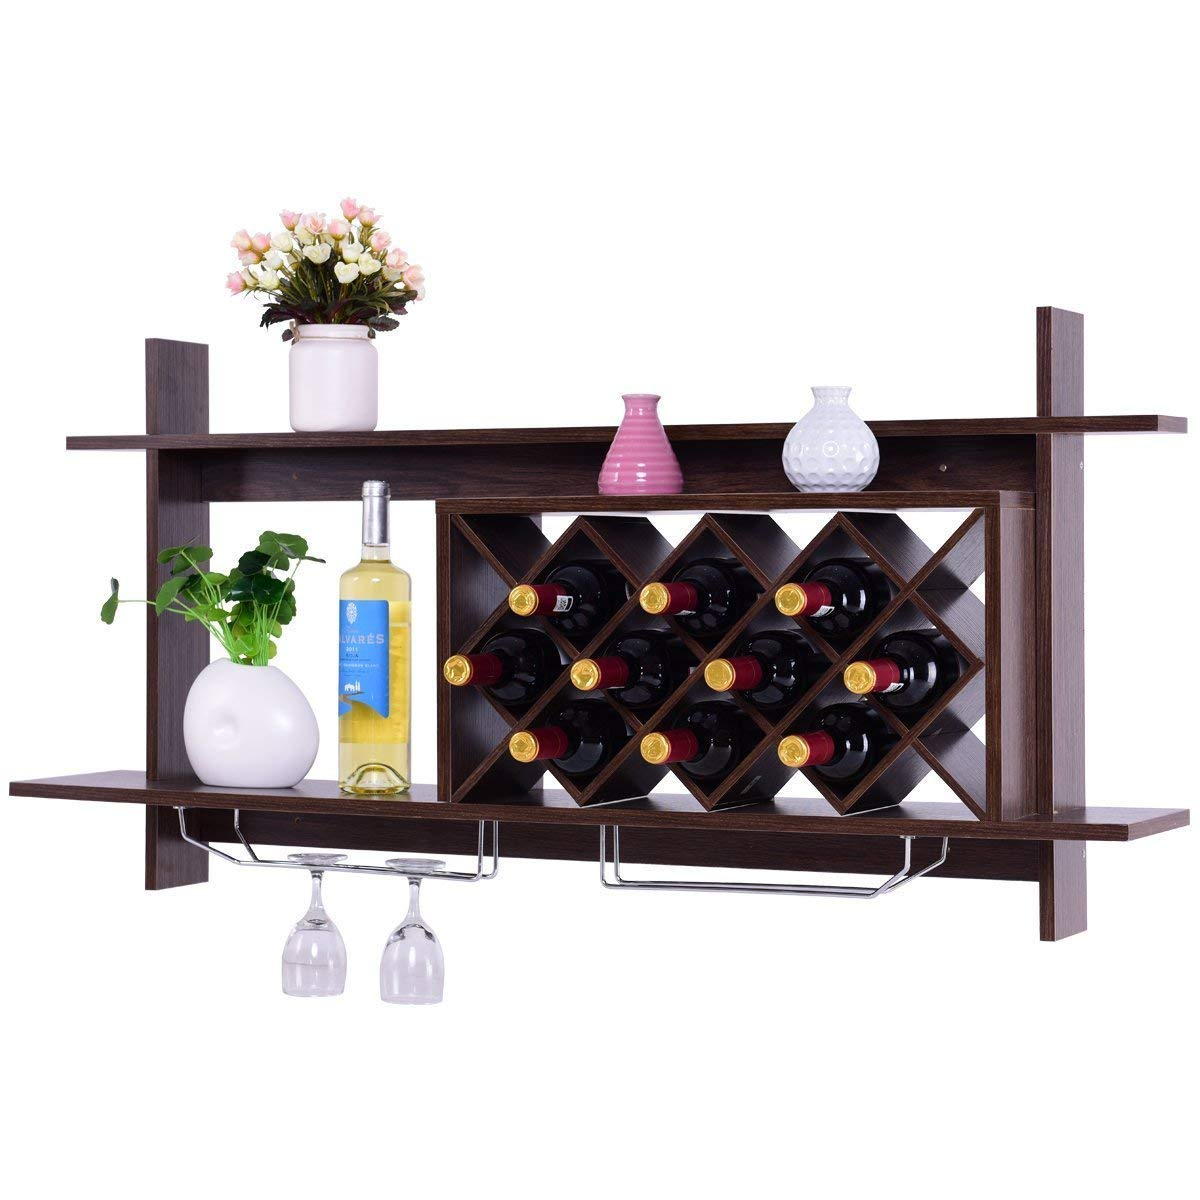 Amazoncom Giantex Wall Mounted Wine Rack Organizer Wmetal Glass